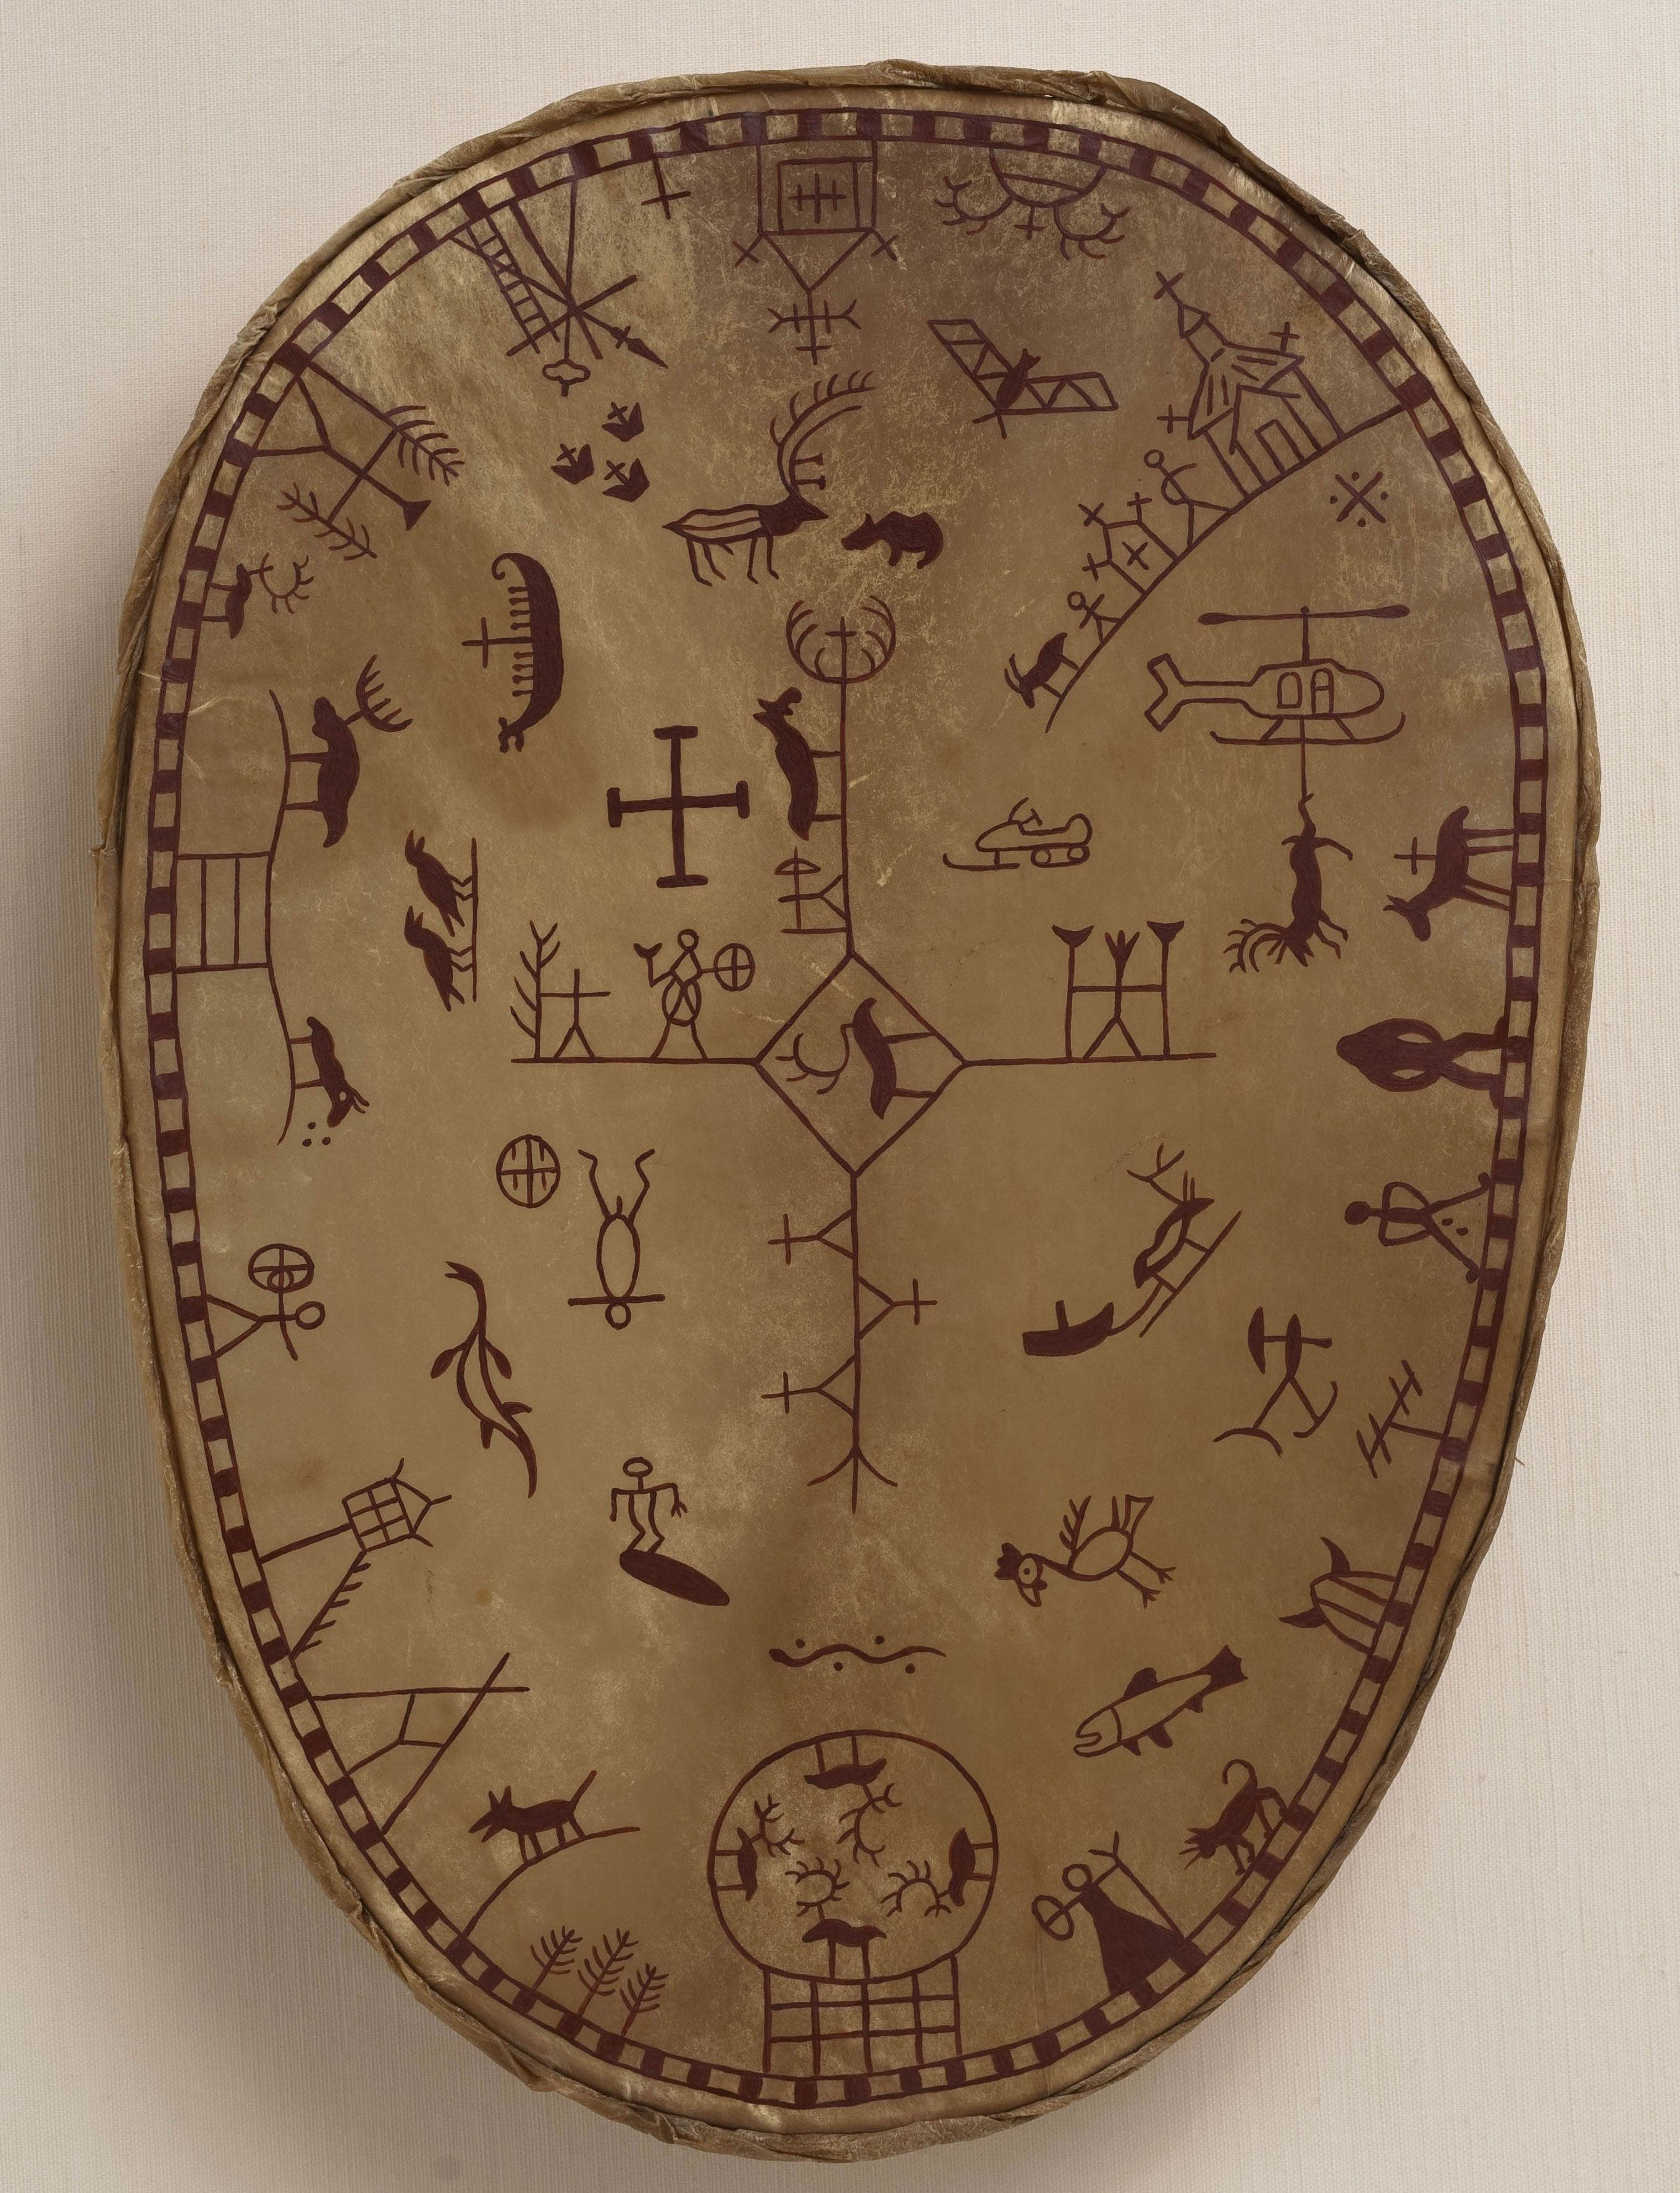 Saami shaman's drum made by Californian artist Jeffrey Vallance under the direction of a Swedish craftsman of shamanic descent.